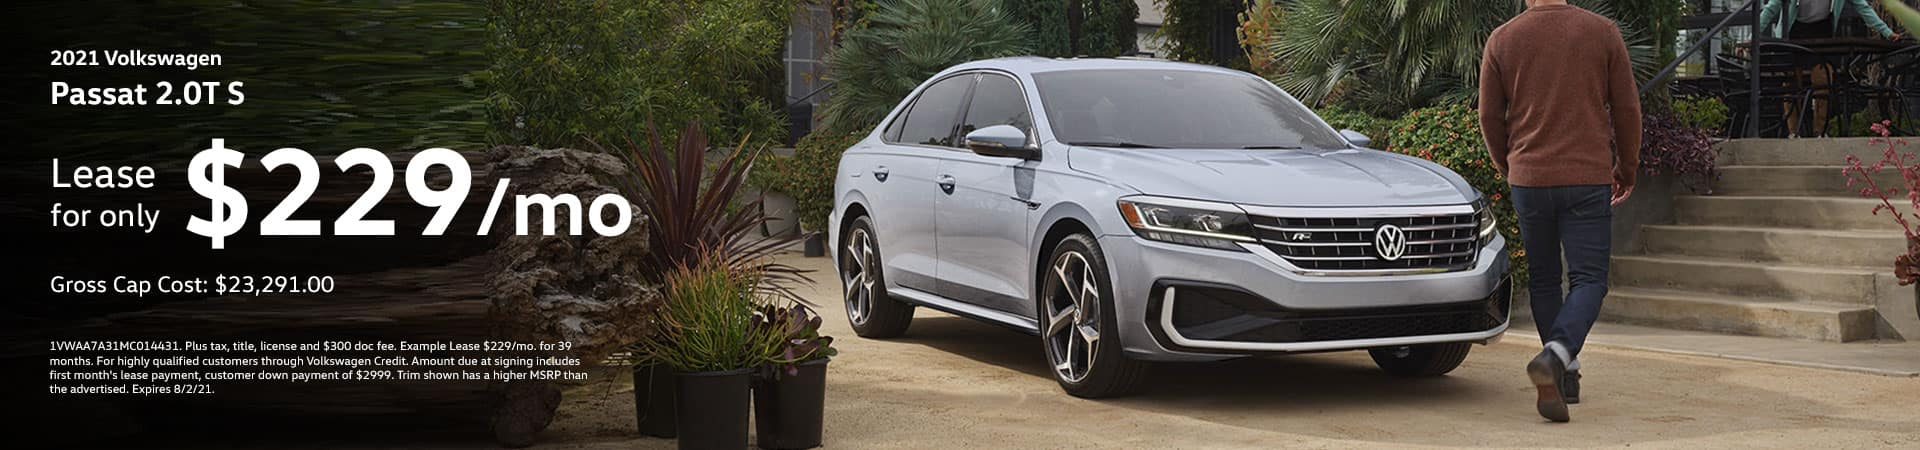 2021 Volkswagen Passat 2.0T S Lease for only 229/month.